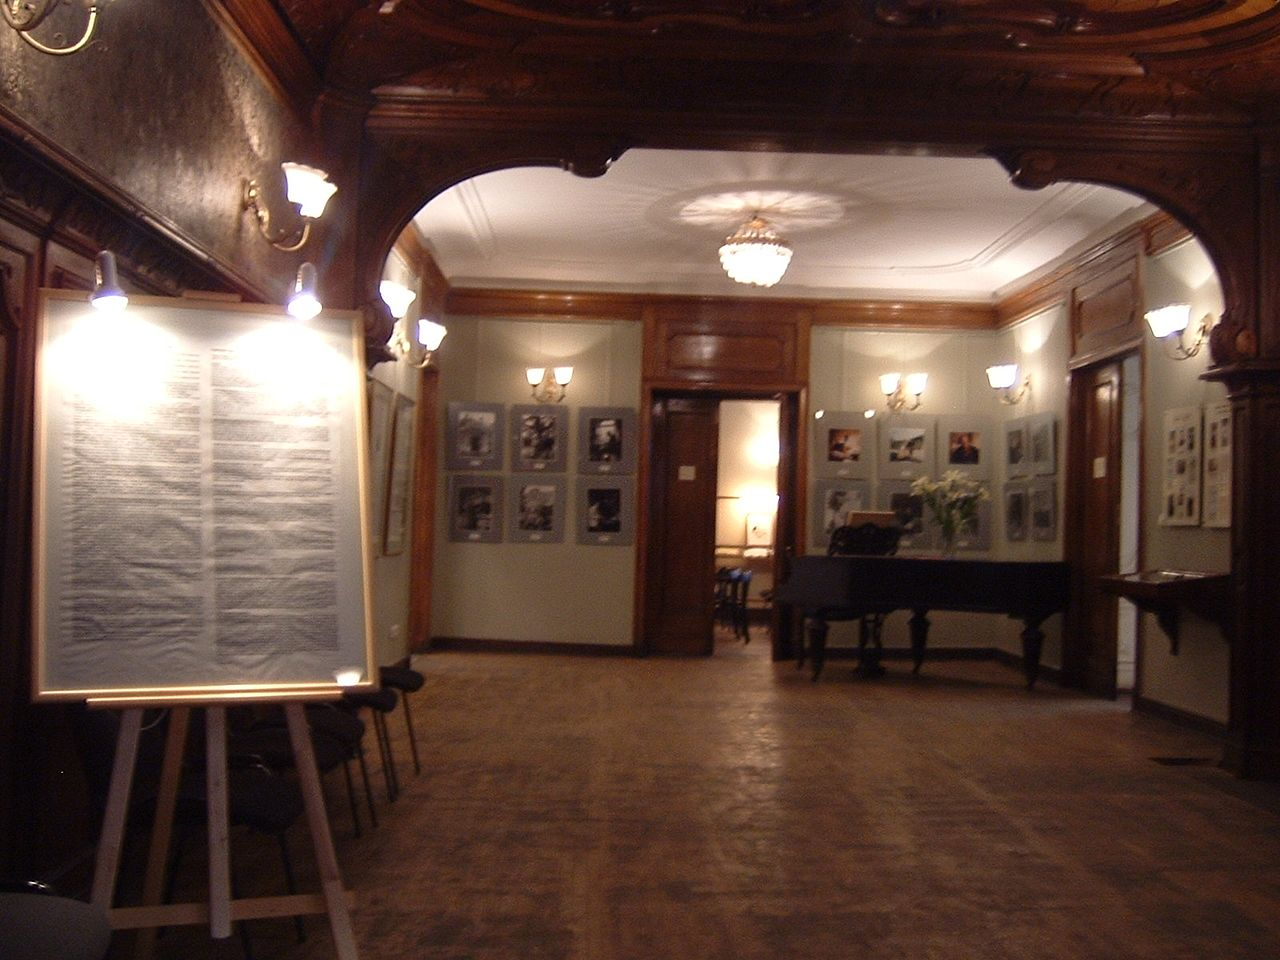 Pics Of Houses Inside File Nabokov House Inside Jpg Wikimedia Commons